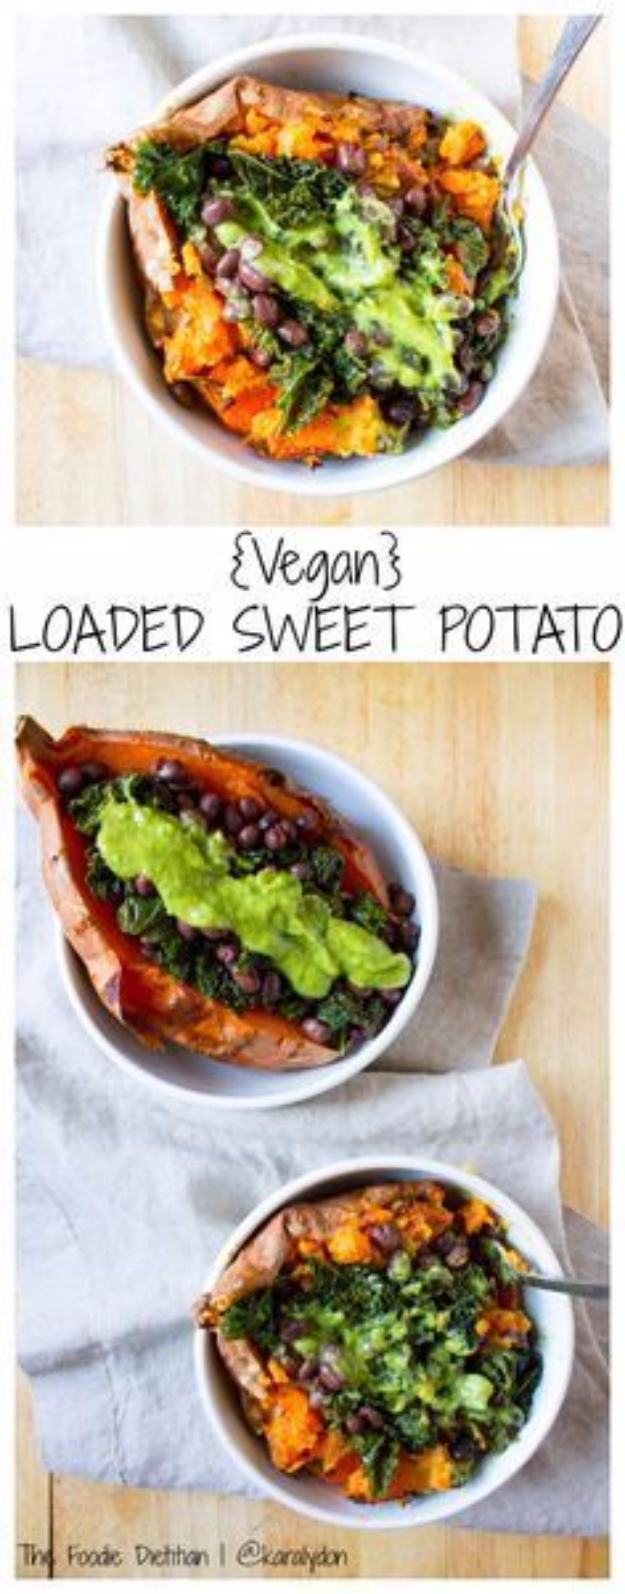 Quick and Healthy Dinner Recipes - Vegan Loaded Sweet Potato - Easy and Fast Recipe Ideas for Dinners at Home - Chicken, Beef, Ground Meat, Pasta and Vegetarian Options - Cheap Dinner Ideas for Family, for Two , for Last Minute Cooking #recipes #healthyrecipes